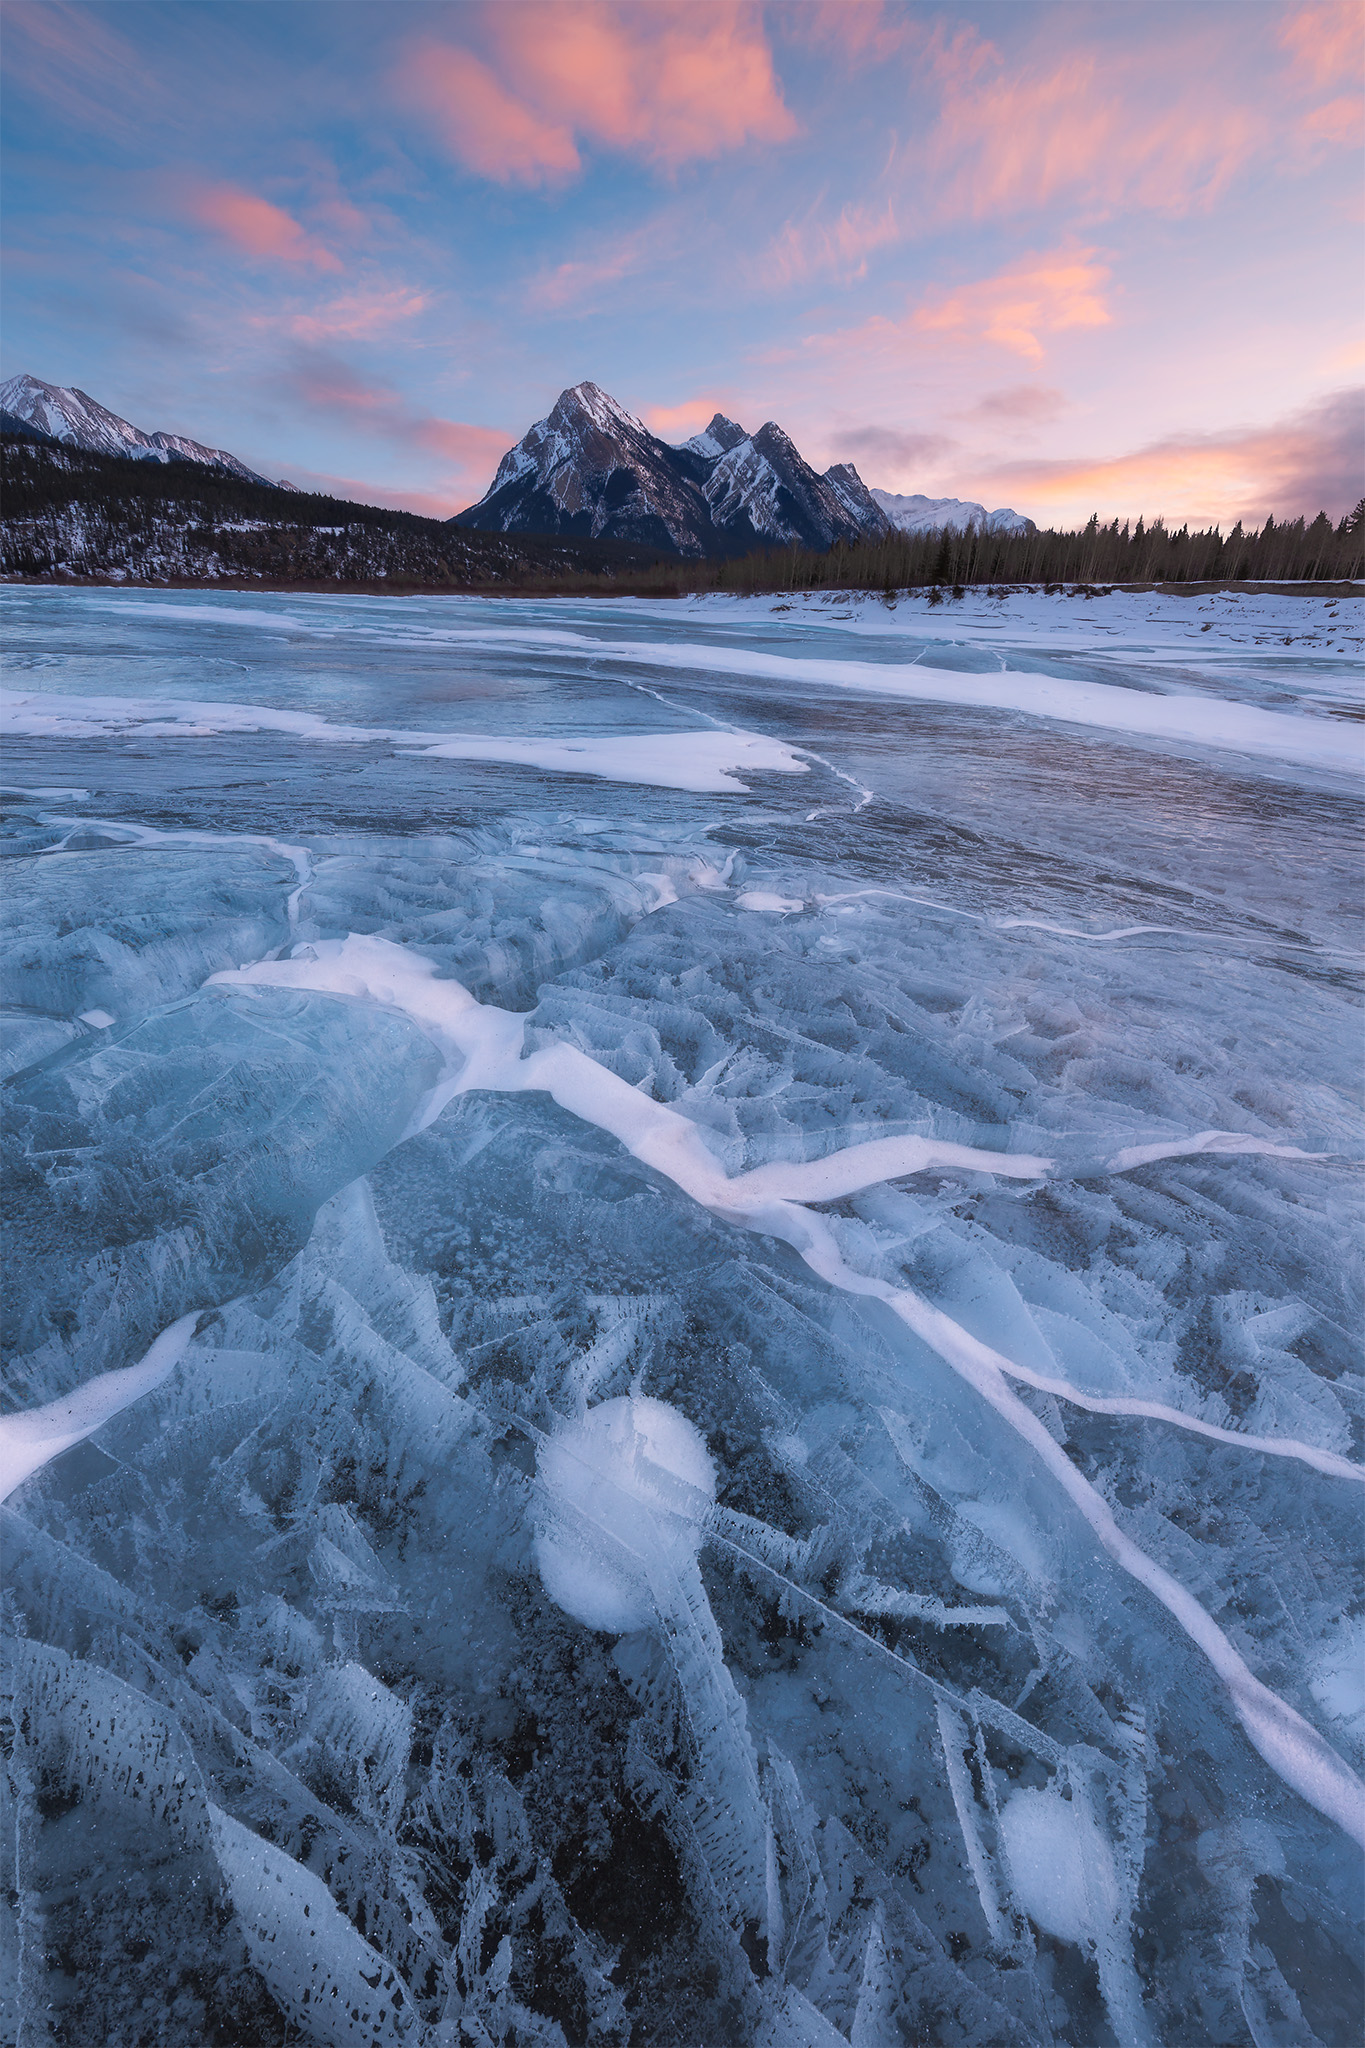 A landscape photograph of Ex Coelis Mountain on Abraham Lake with bubbles and ice textures